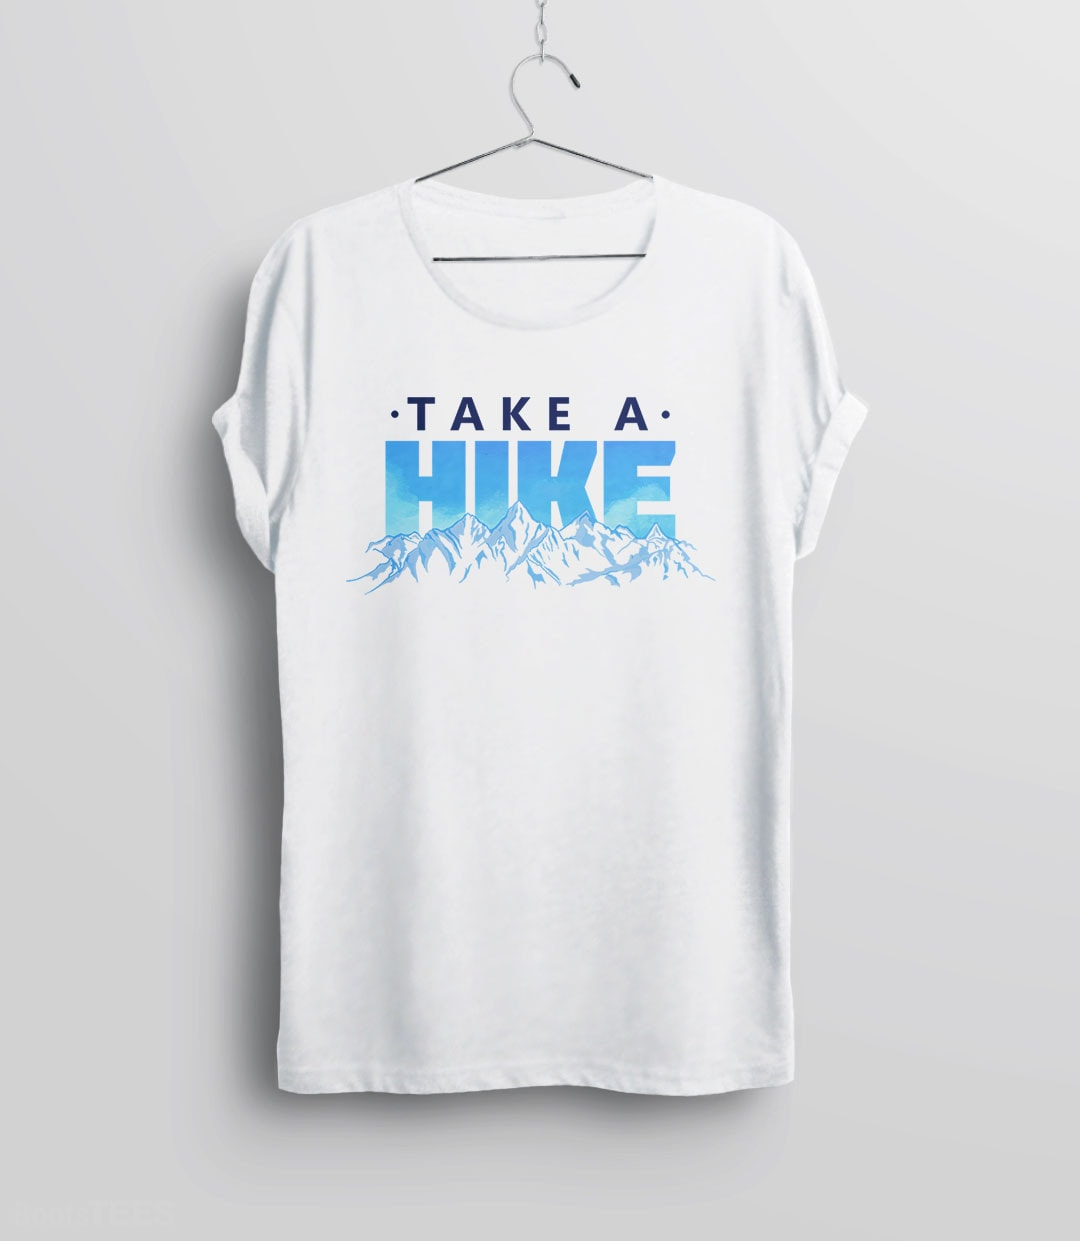 Beautiful Hiking Typography T-Shirt with Funny Outdoors Quote for Nature Lovers. Pictured: Unisex Tee Shirt